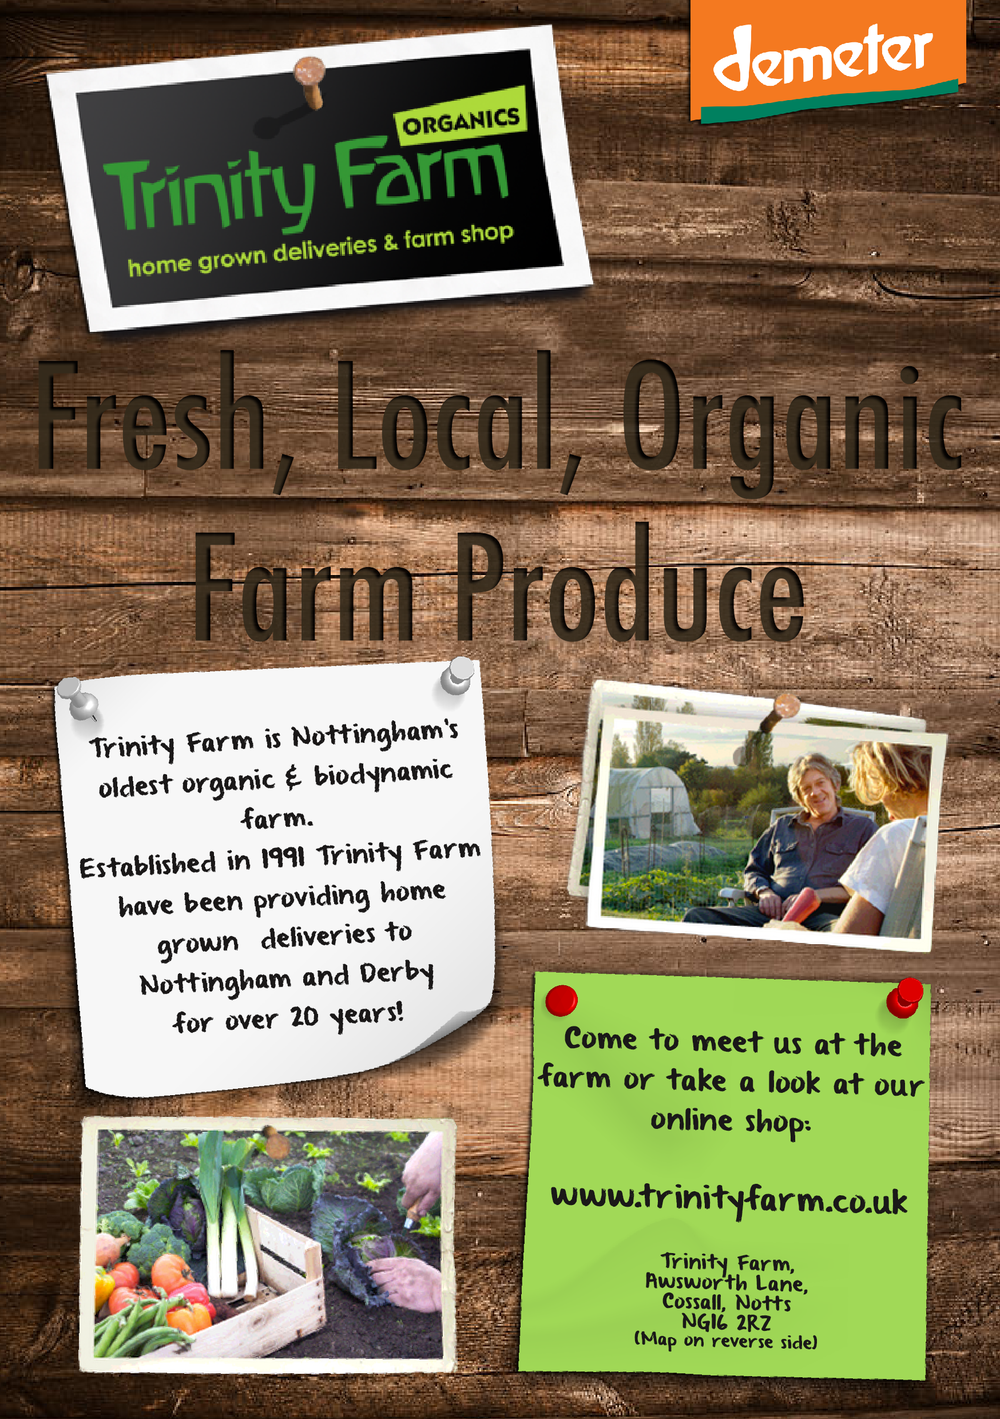 JGP designed this flyer. However, it contains promotional images owned by Trinity Farm Ltd which JGP used with their permission.